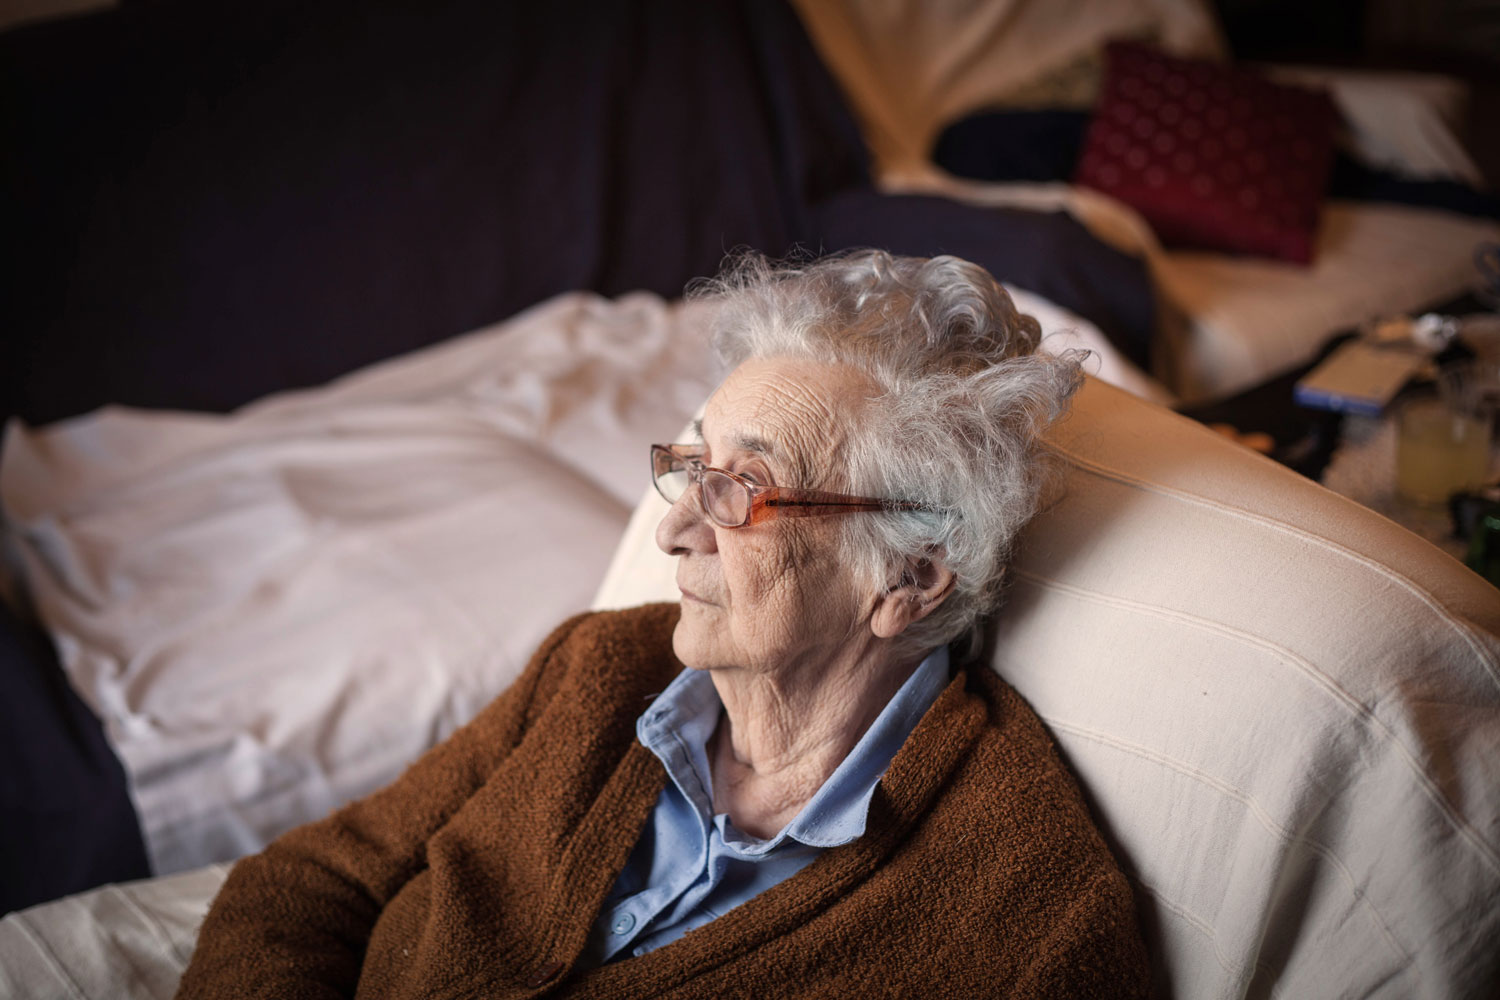 Is It Time For Home Care? Take The Quiz